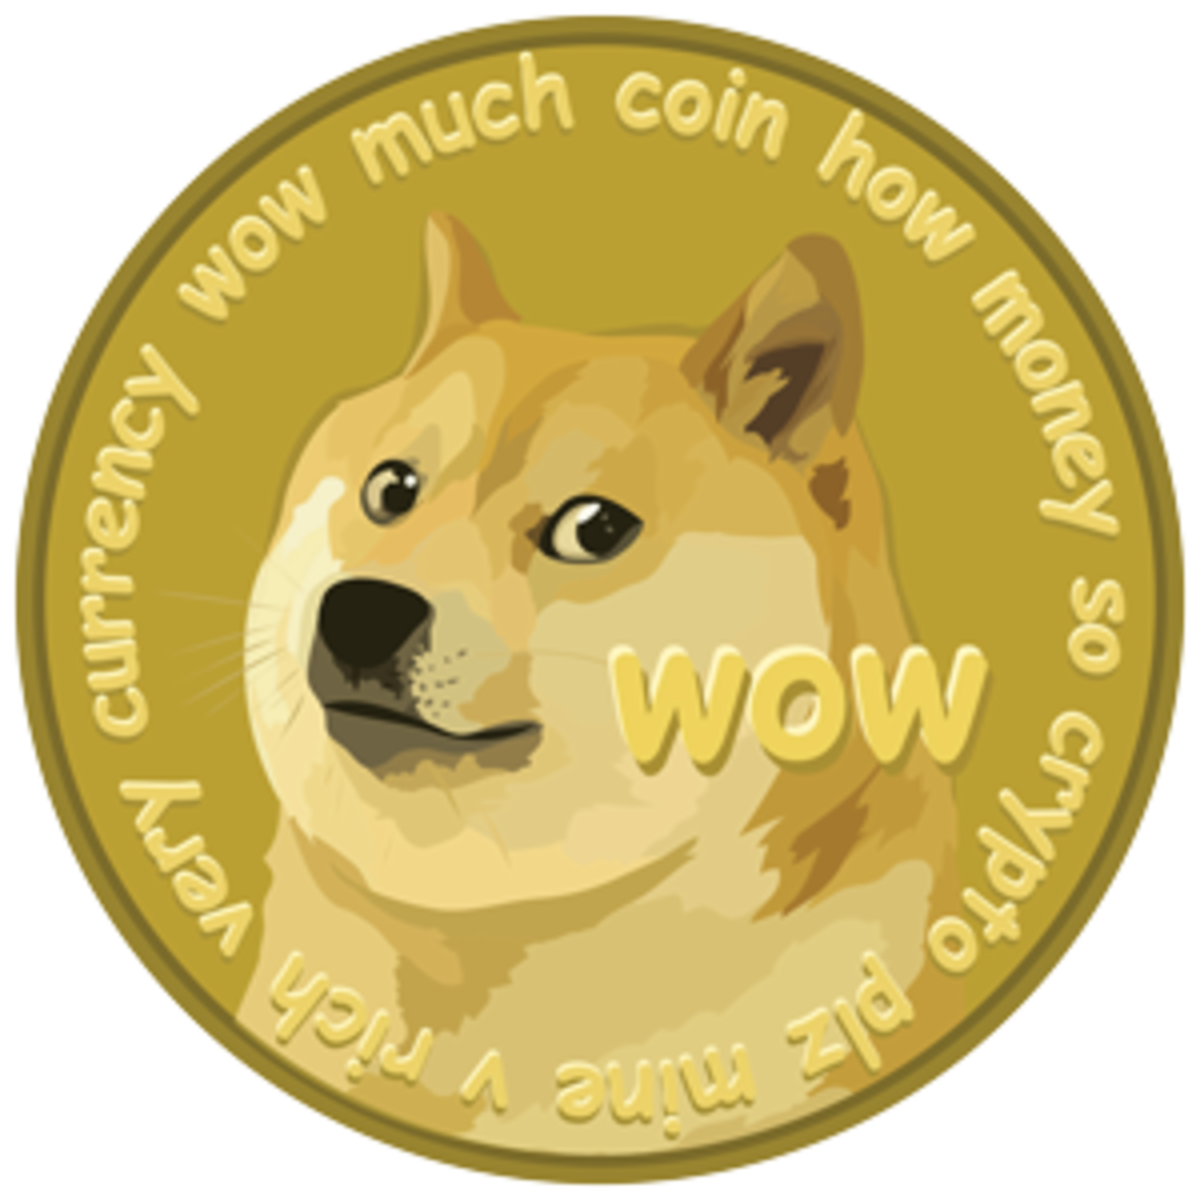 The alternate design for Dogecoin.